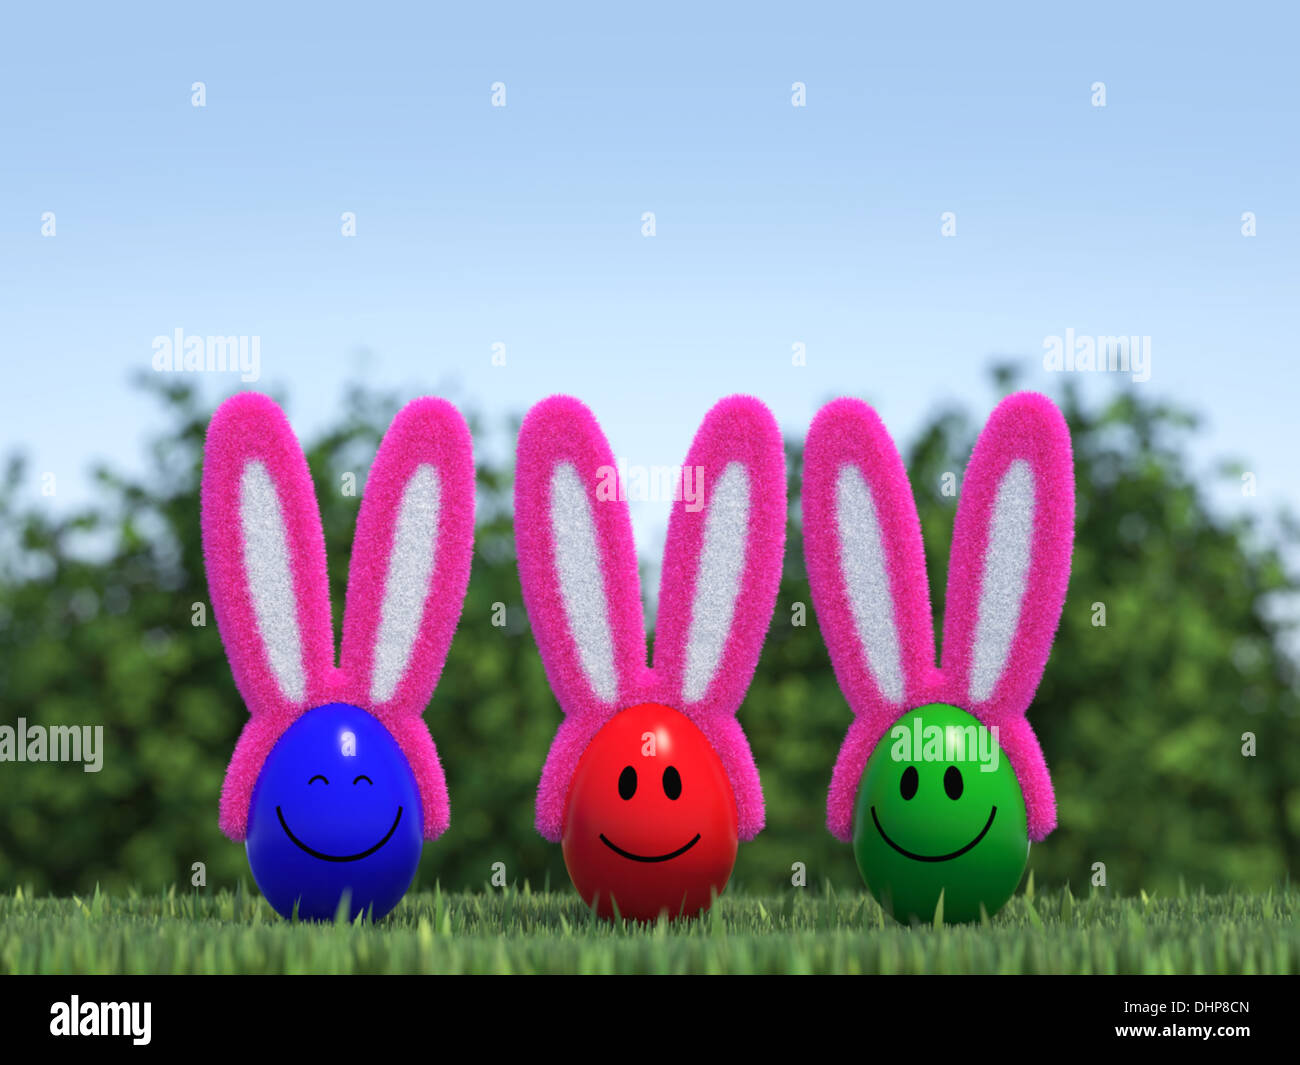 Smiling Easter Eggs Wiht Bunny Ears